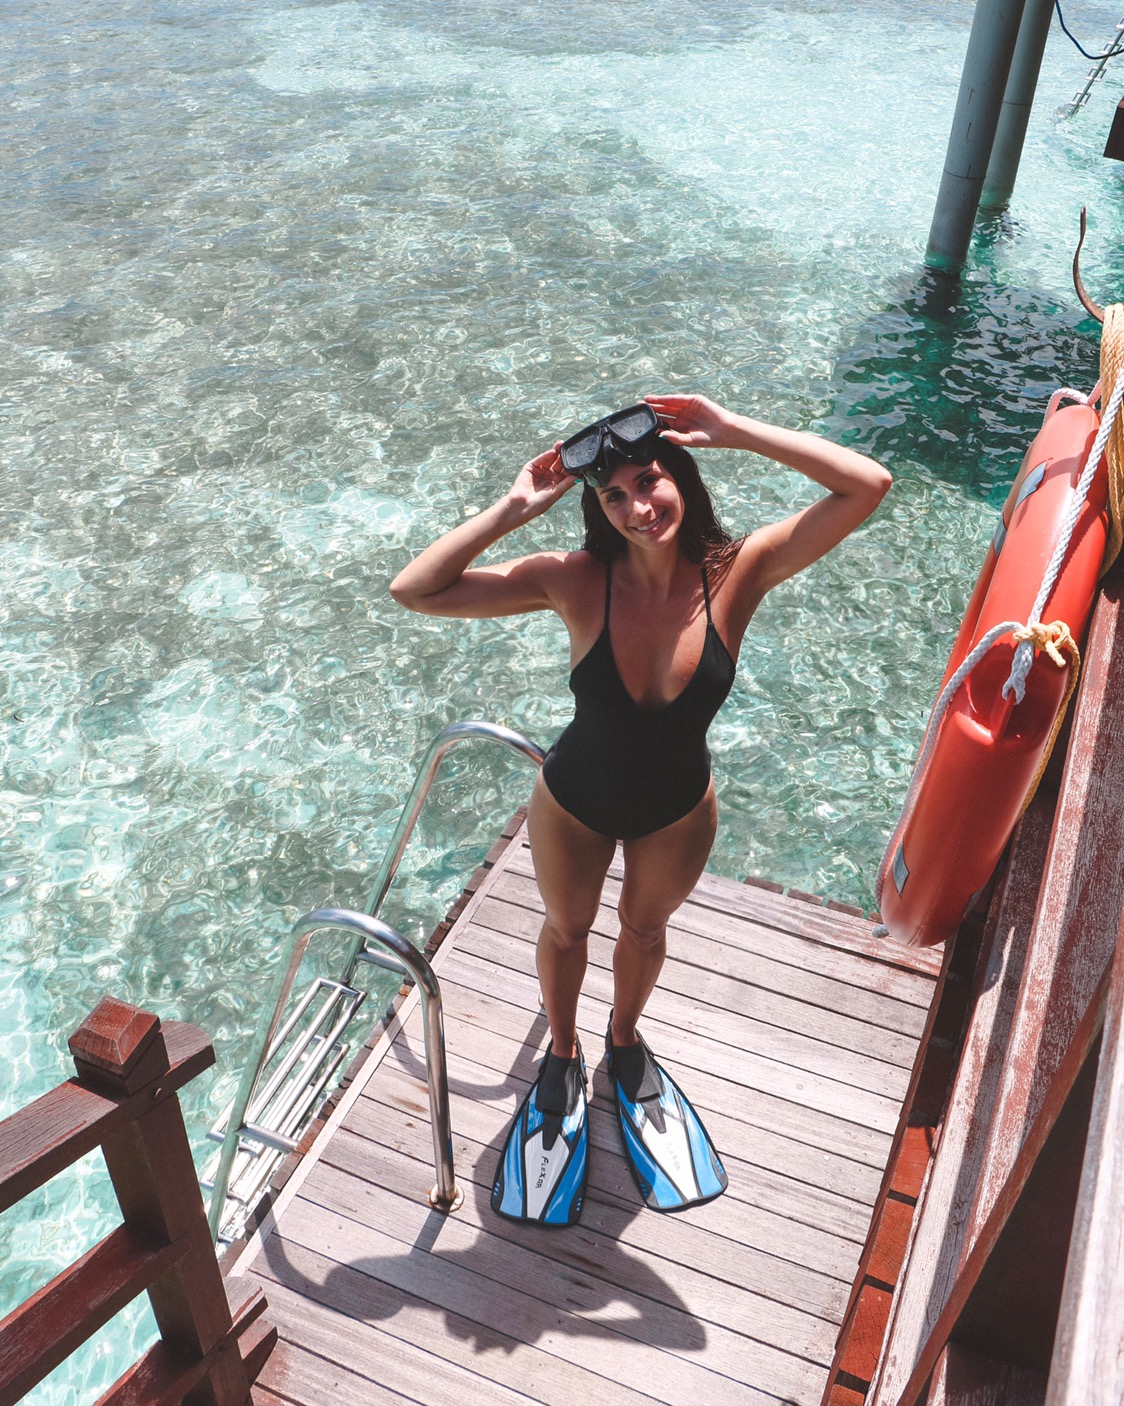 Snorkeling adventures in the Maldives.